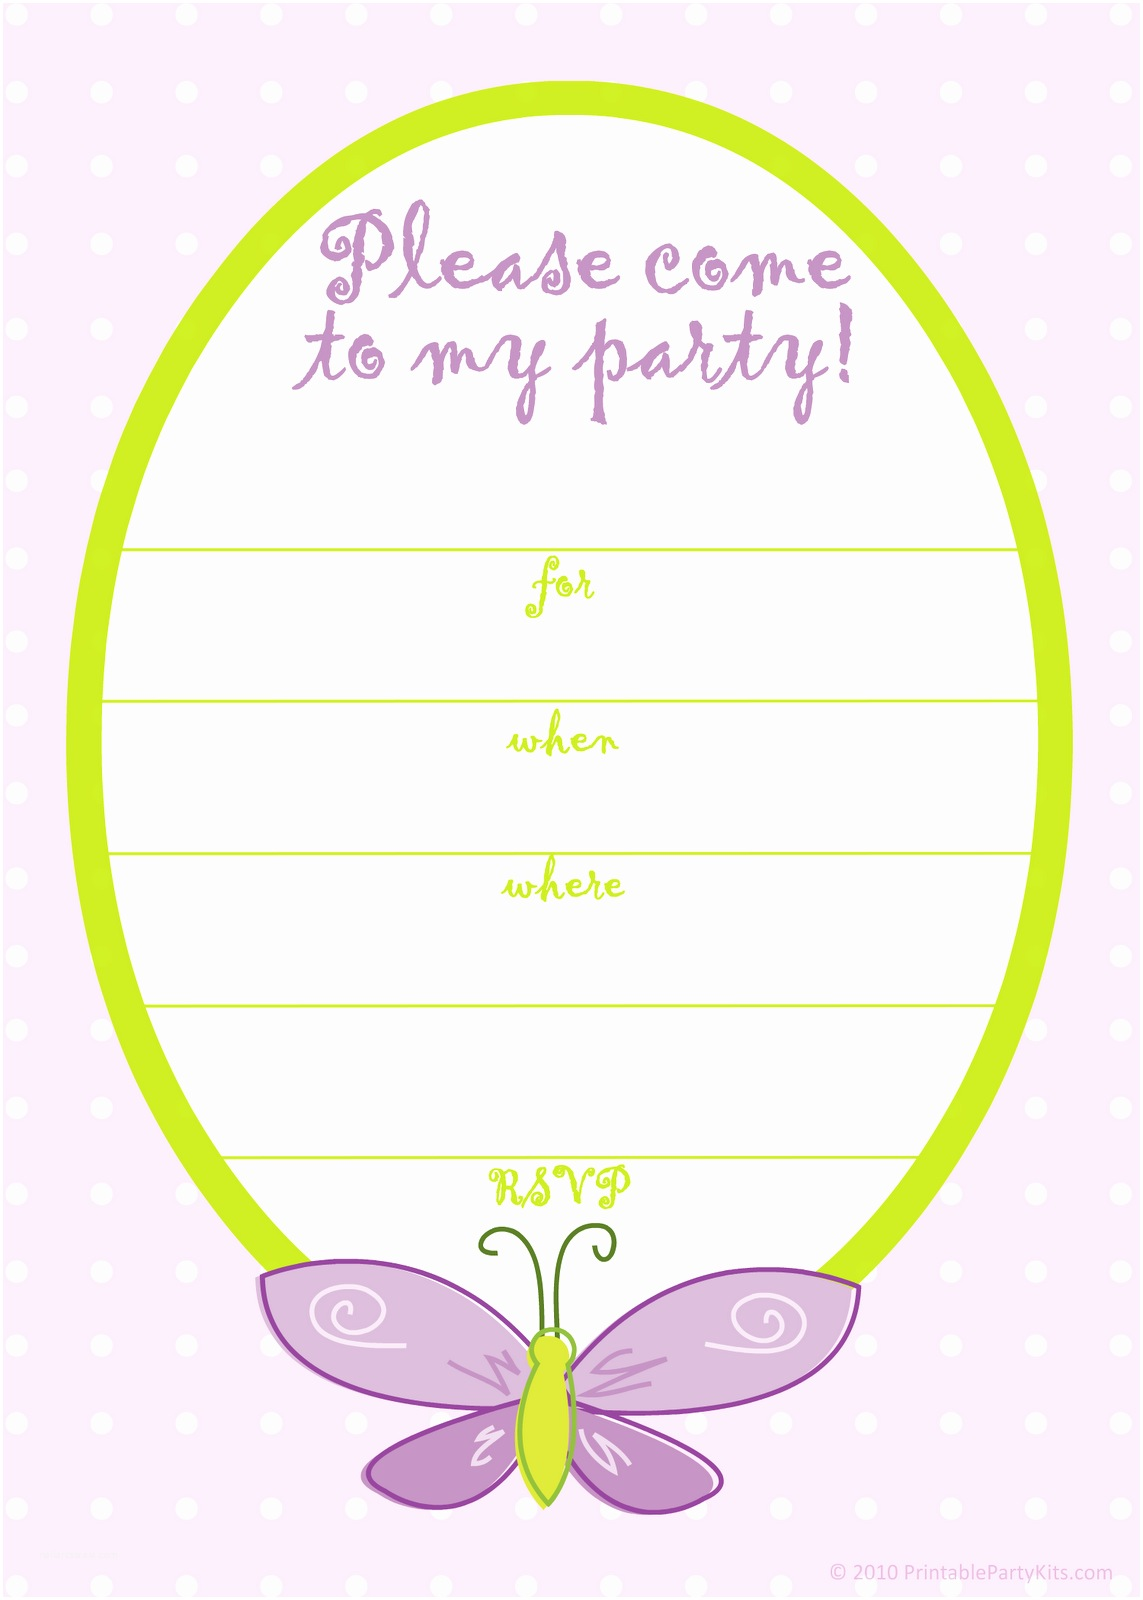 Girls Party Invitations Birthday Invitations Templates for Girls Free